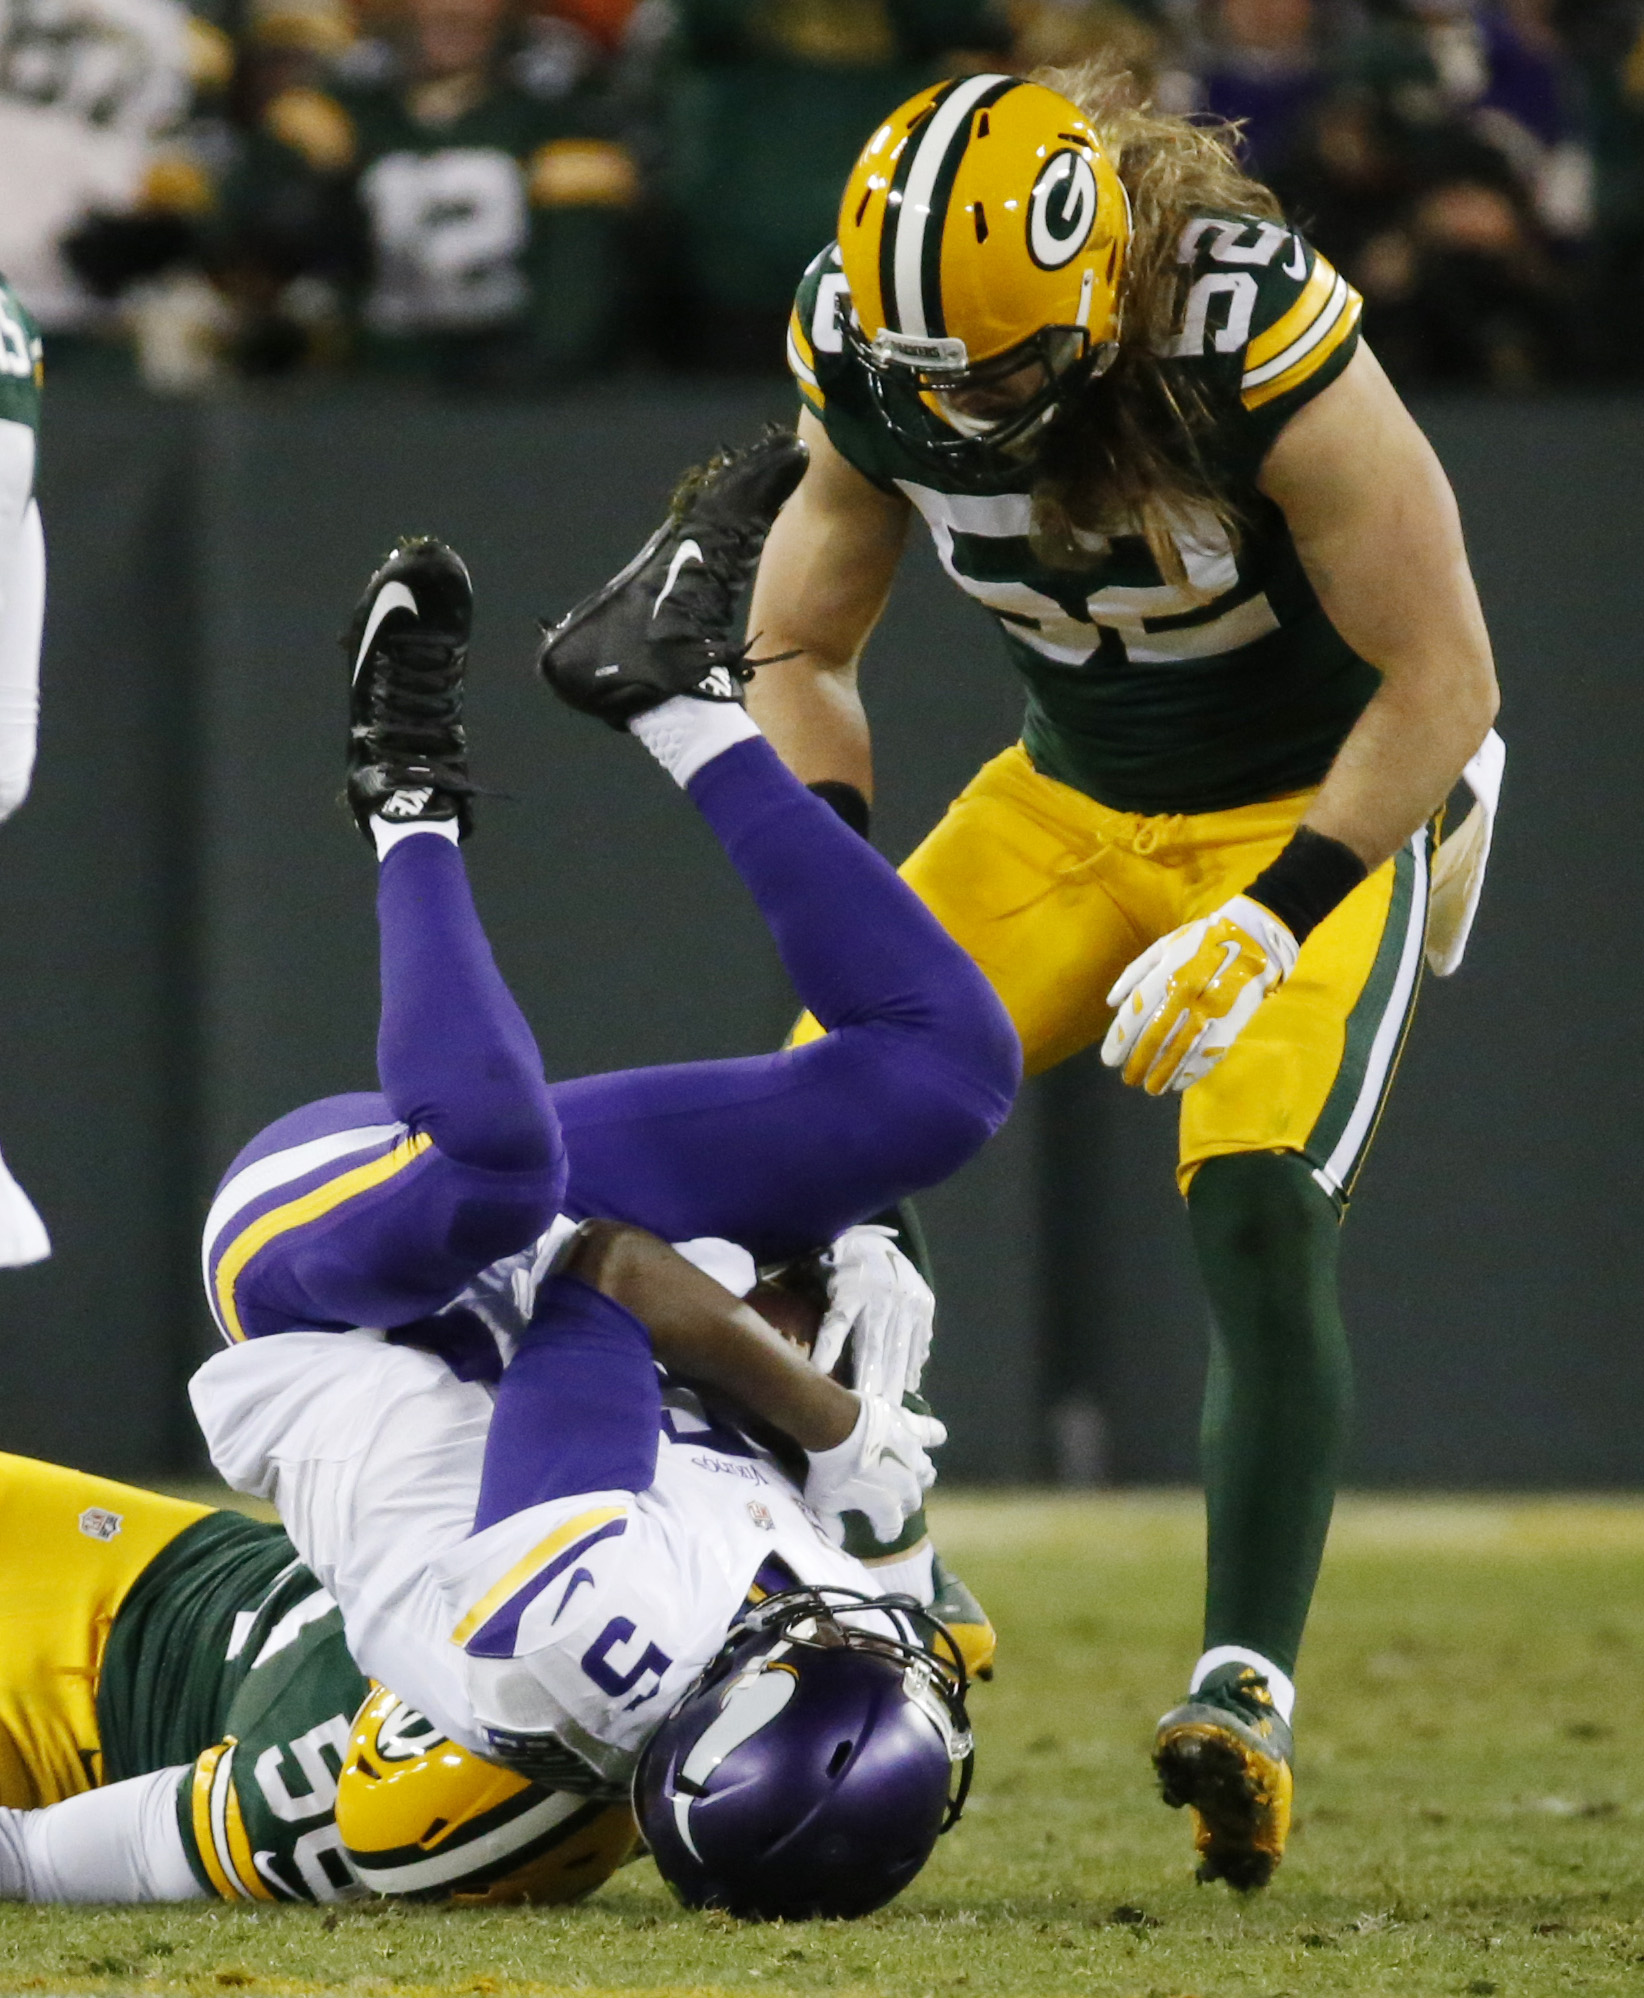 Minnesota Vikings' Teddy Bridgewater is stopped by Green Bay Packers' Julius Peppers and Clay Matthews (52) on a run during the first half an NFL football game Sunday, Jan. 3, 2016, in Green Bay, Wis. (AP Photo/Mike Roemer)